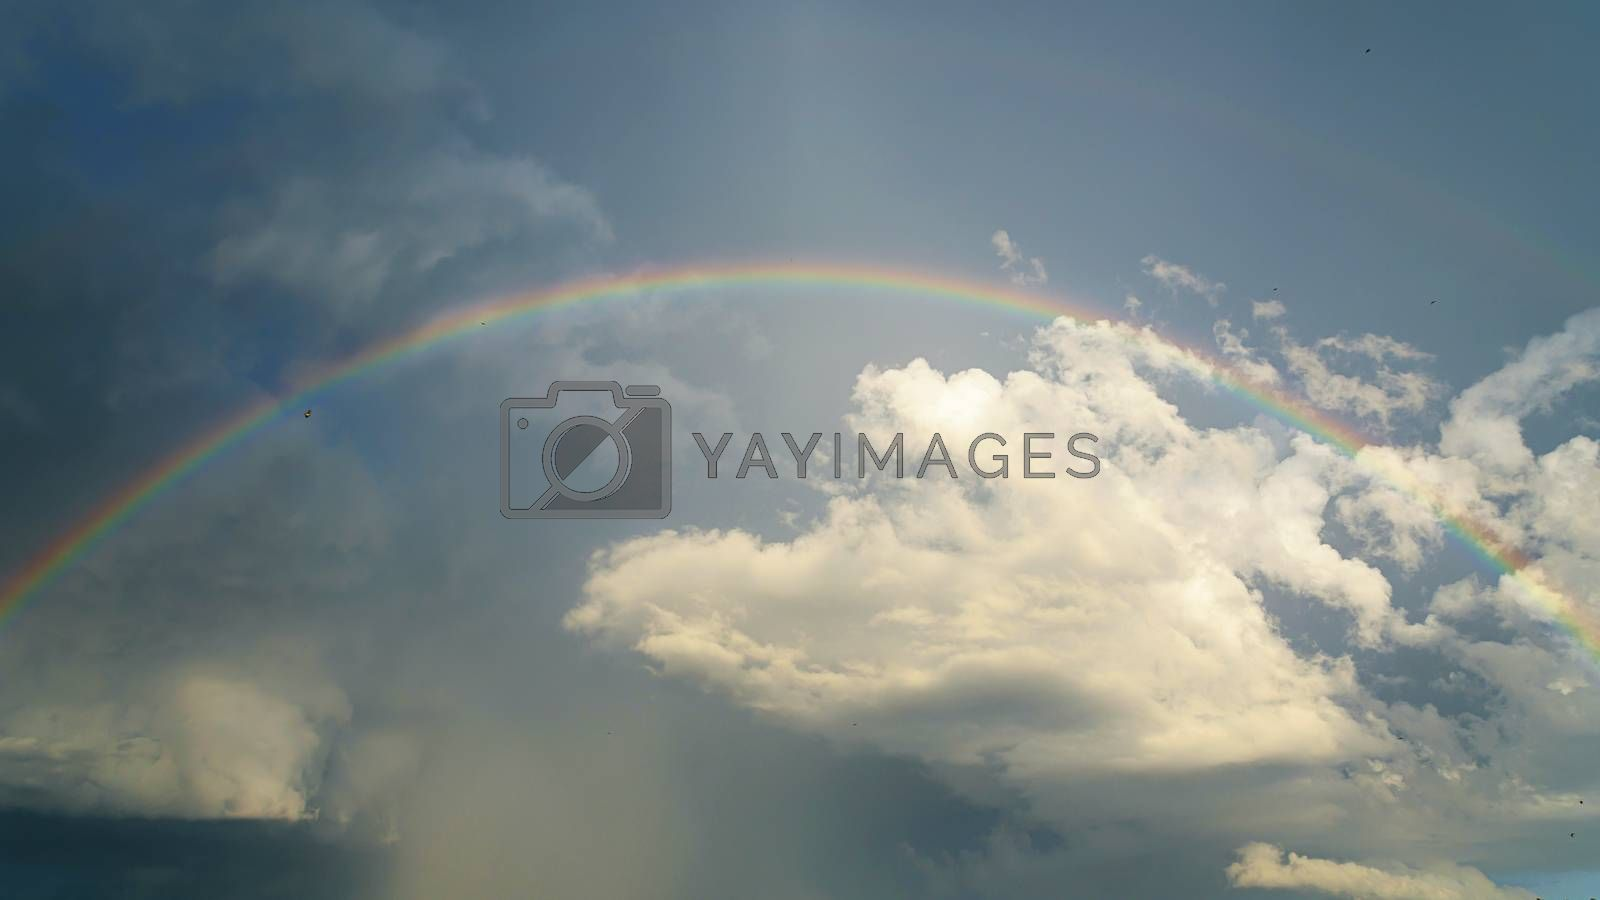 A colorful rainbow on the sky after thunderstorm